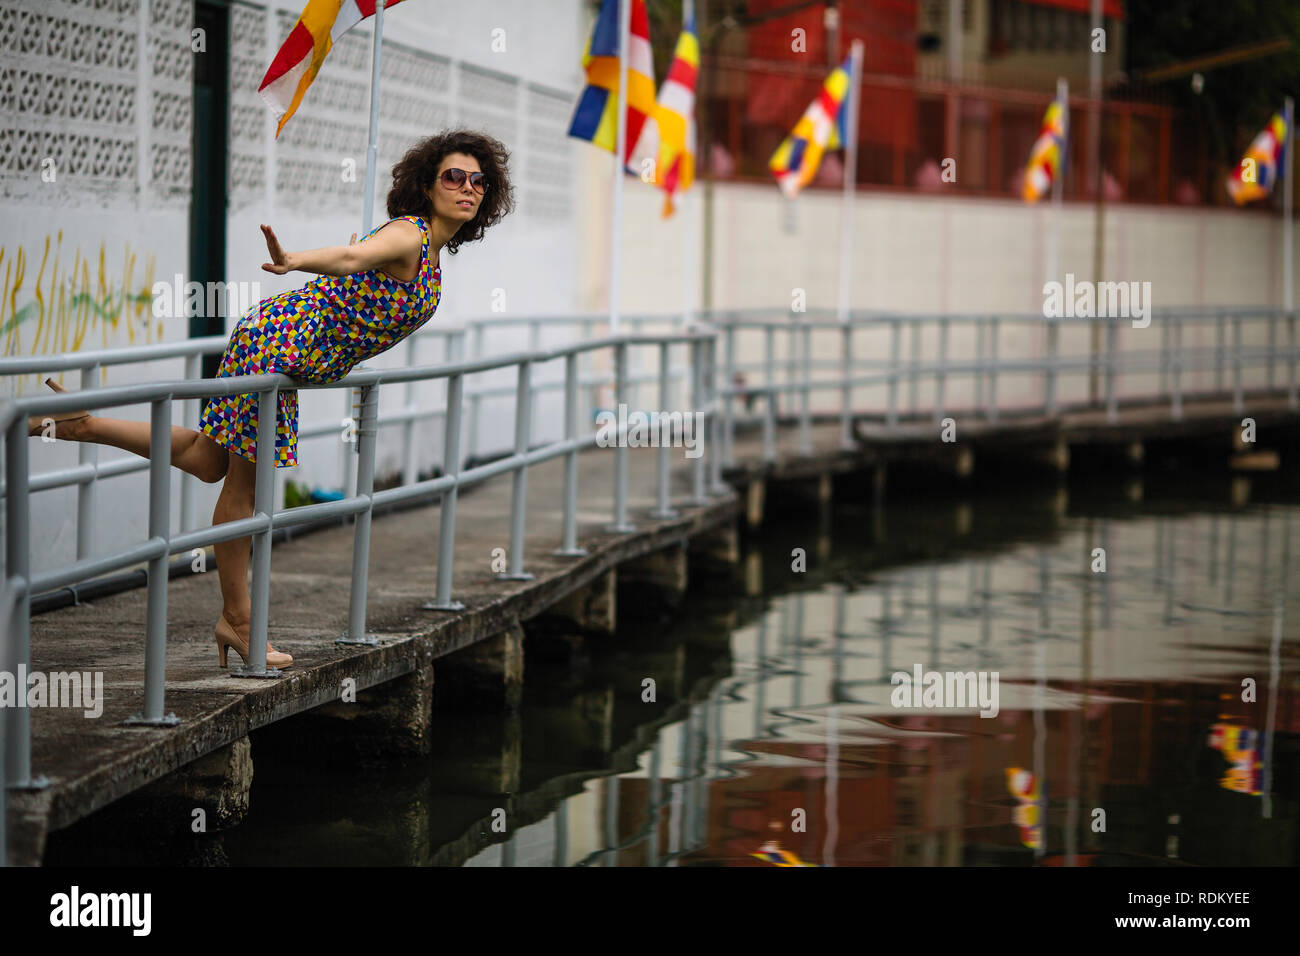 Asian woman wearing sunglasses on the river embankment. Stock Photo